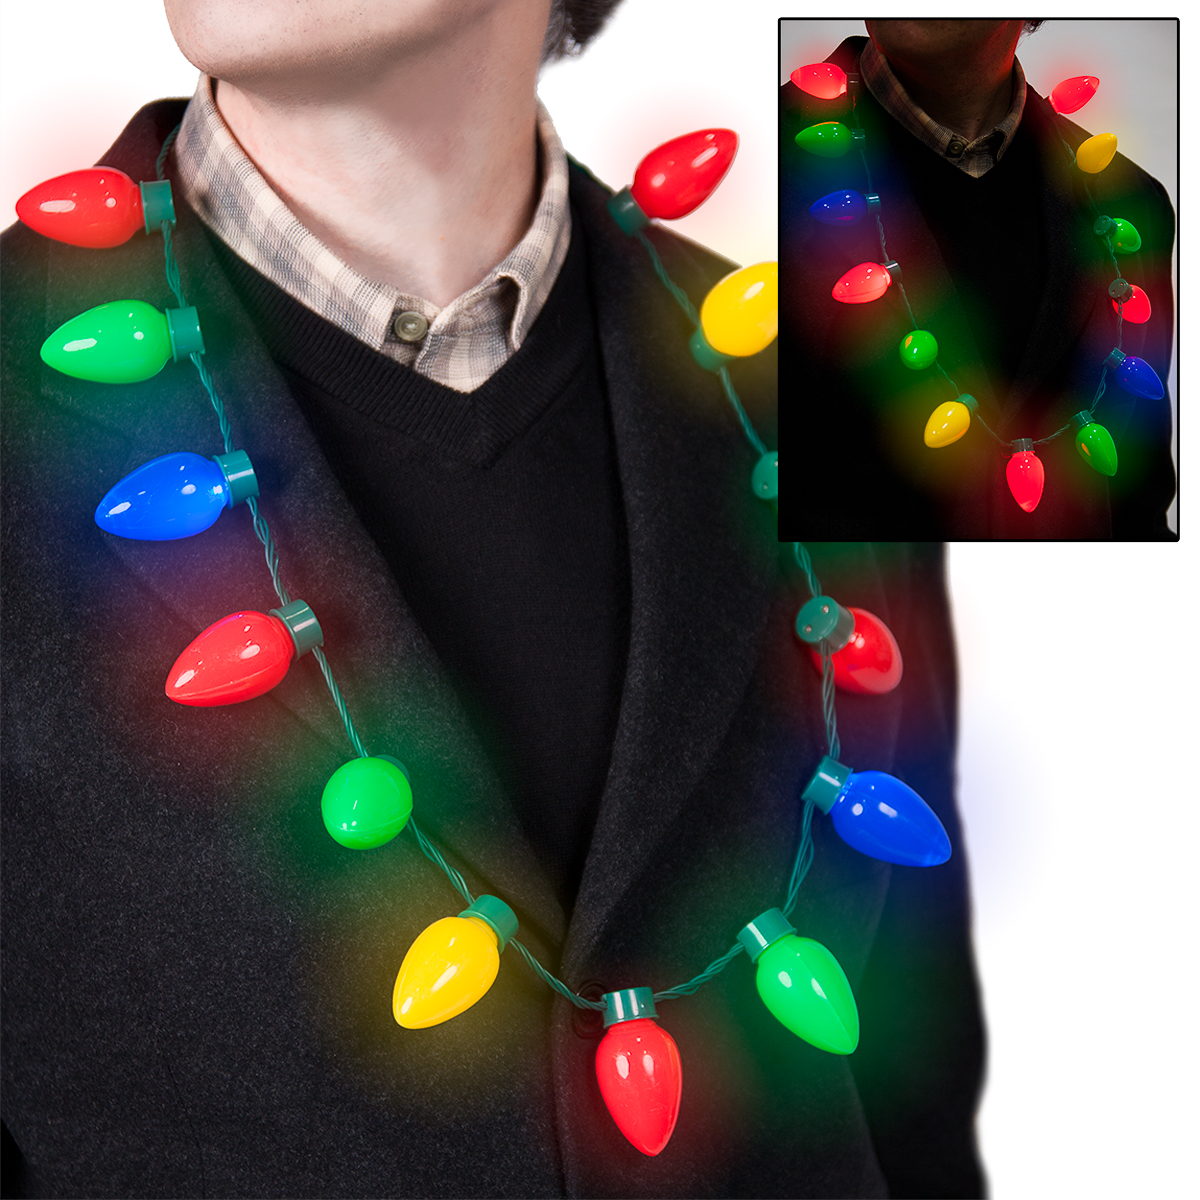 holiday christmas classic large bulb led novelty flashing necklace 6 modes - Christmas Light Necklace Battery Operated